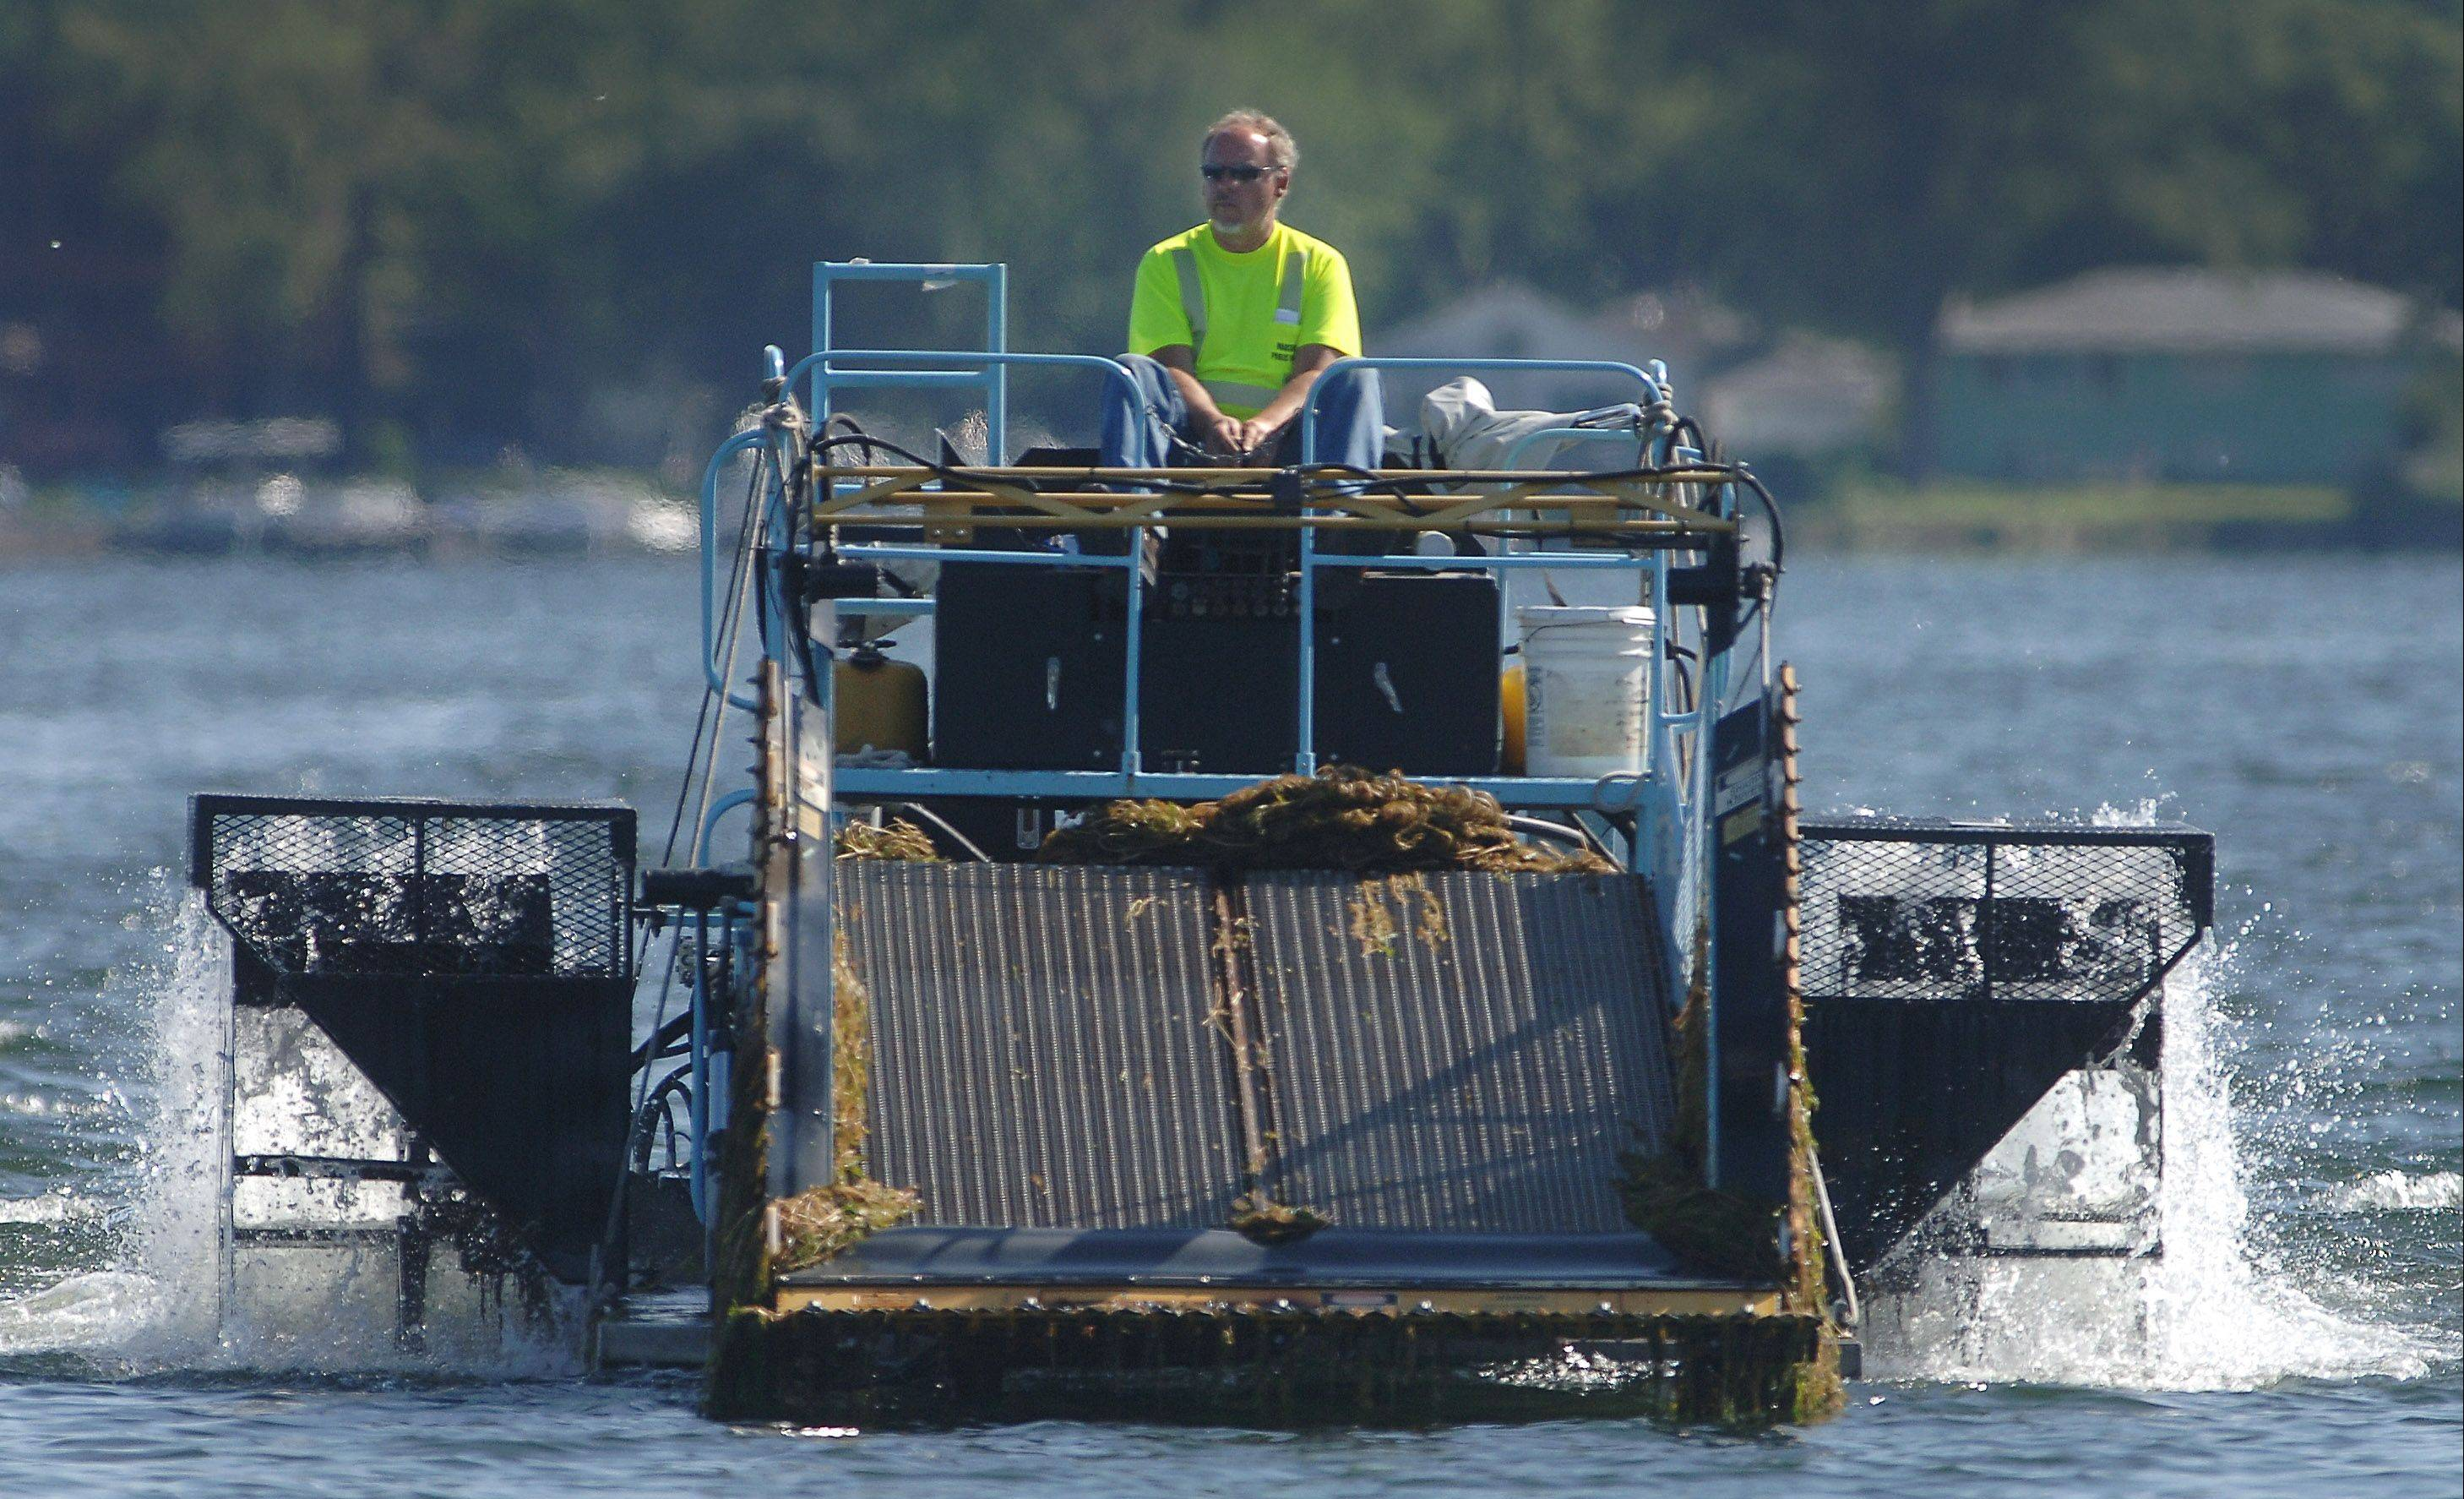 Bob Garrod of the Wauconda Public Works Department operates the aquatic plant harvester on Bangs Lake in late May.